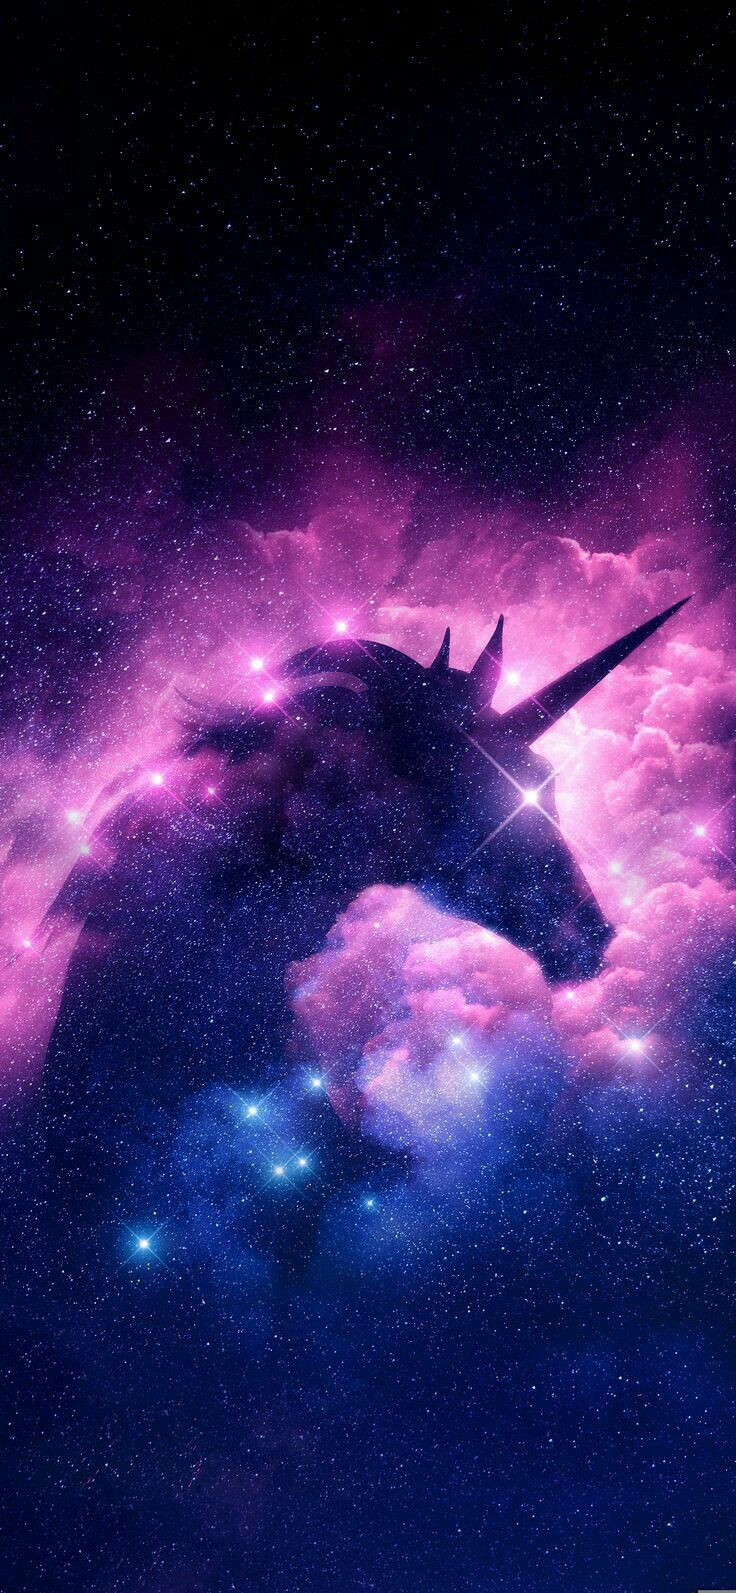 Pin By Alba On Covers Iphone Wallpaper Unicorn Galaxy Wallpaper Iphone Unicorn Wallpaper Cute